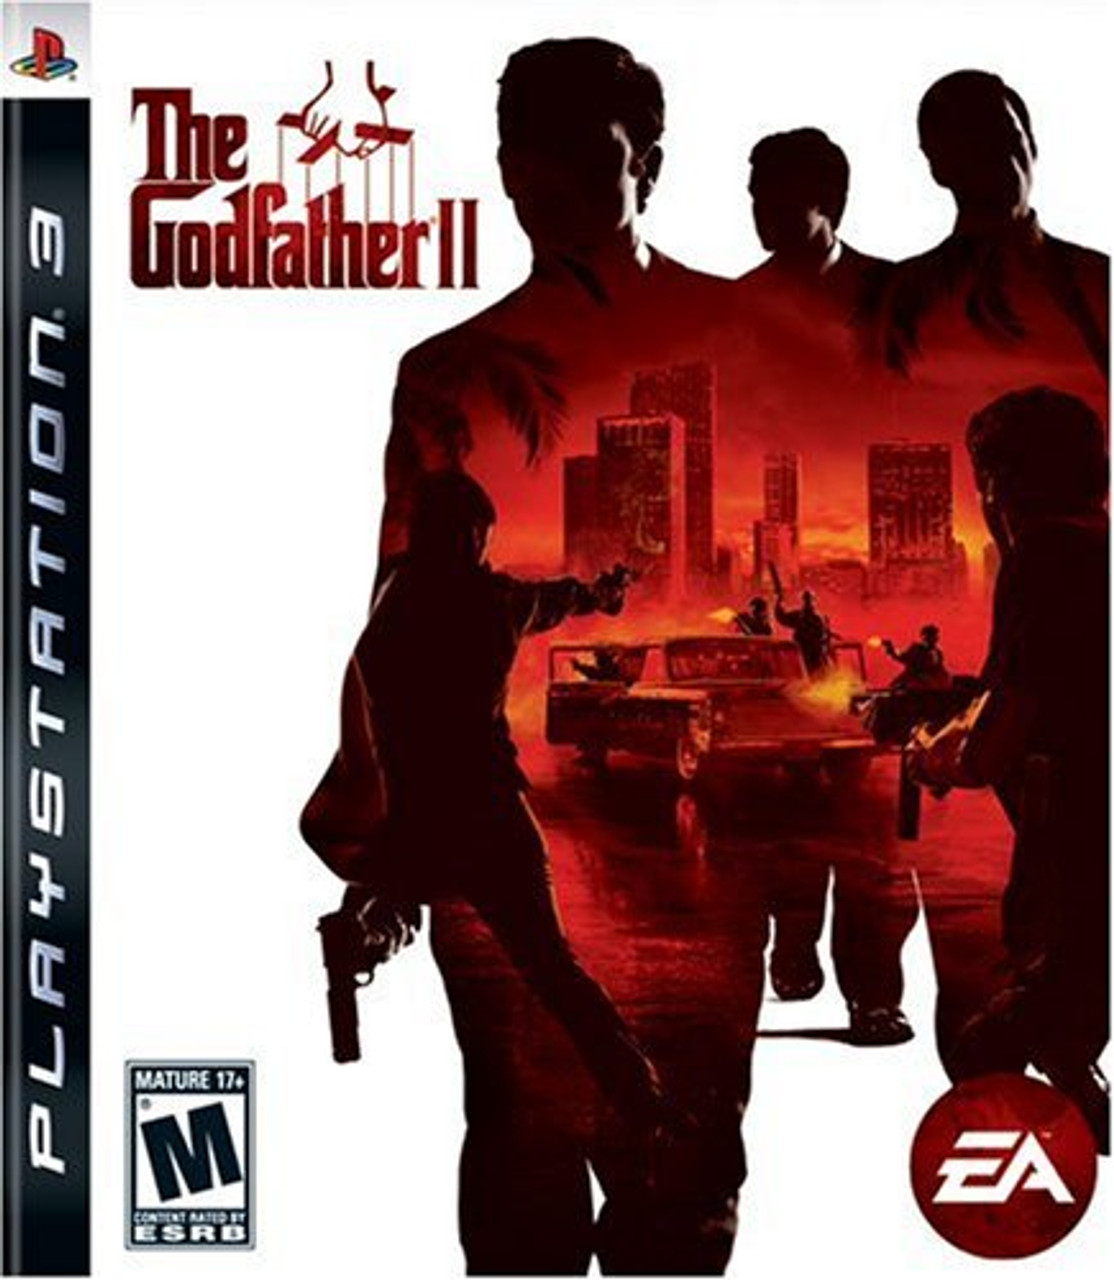 GODFATHER 2 [M] - PS3 - PS3